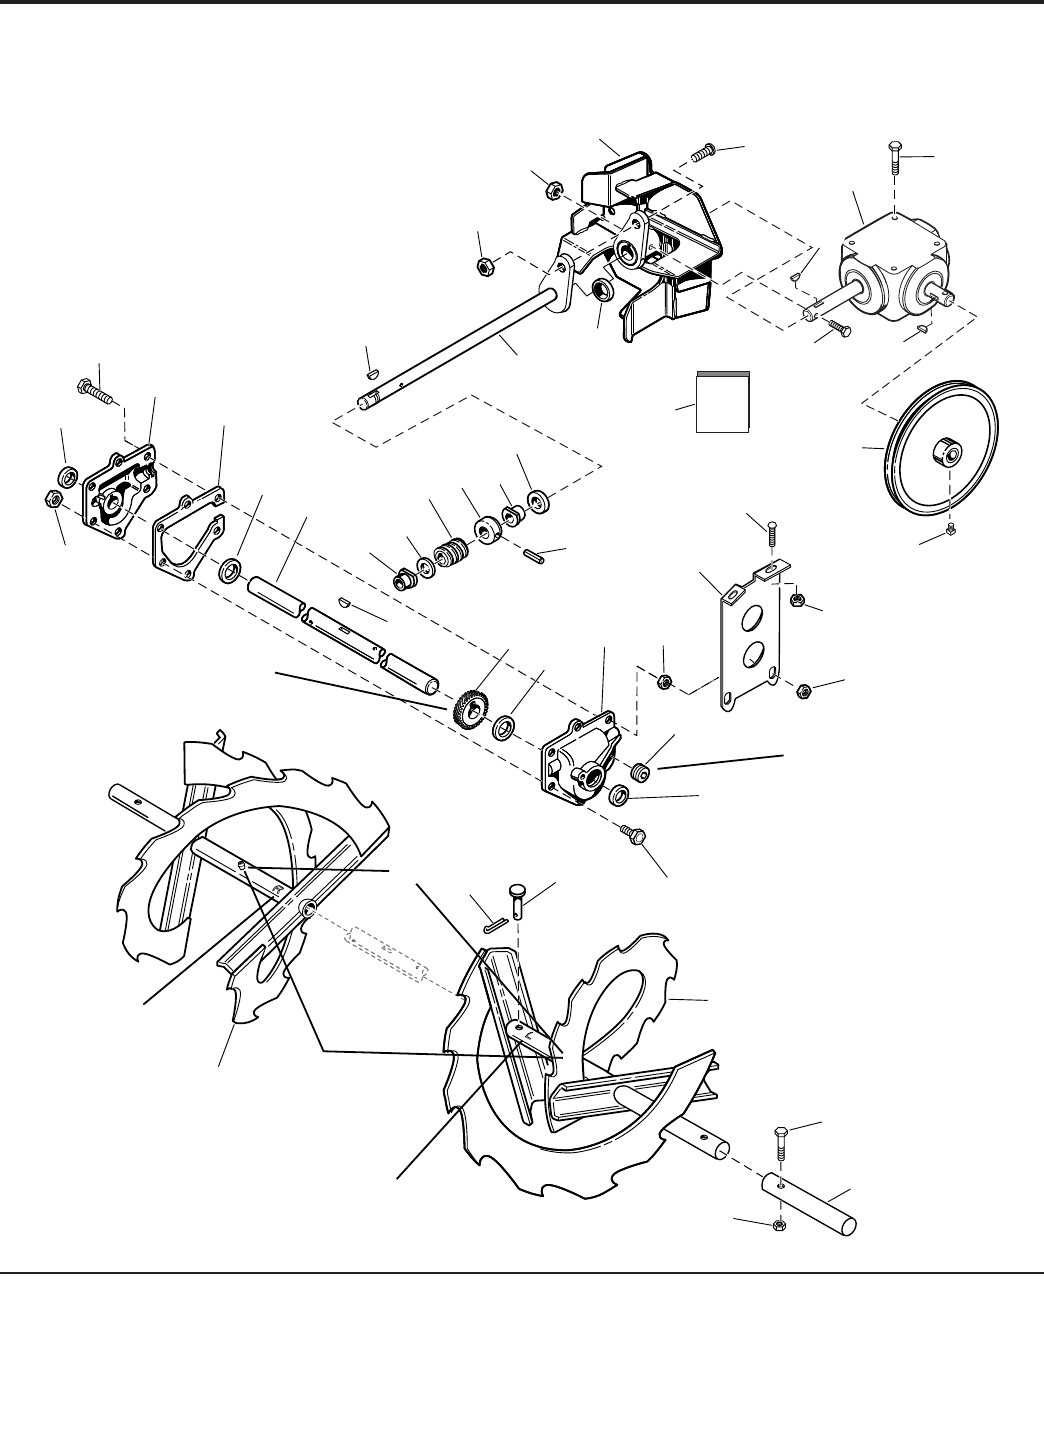 Page 2 of Simplicity Snow Blower 1694238 User Guide